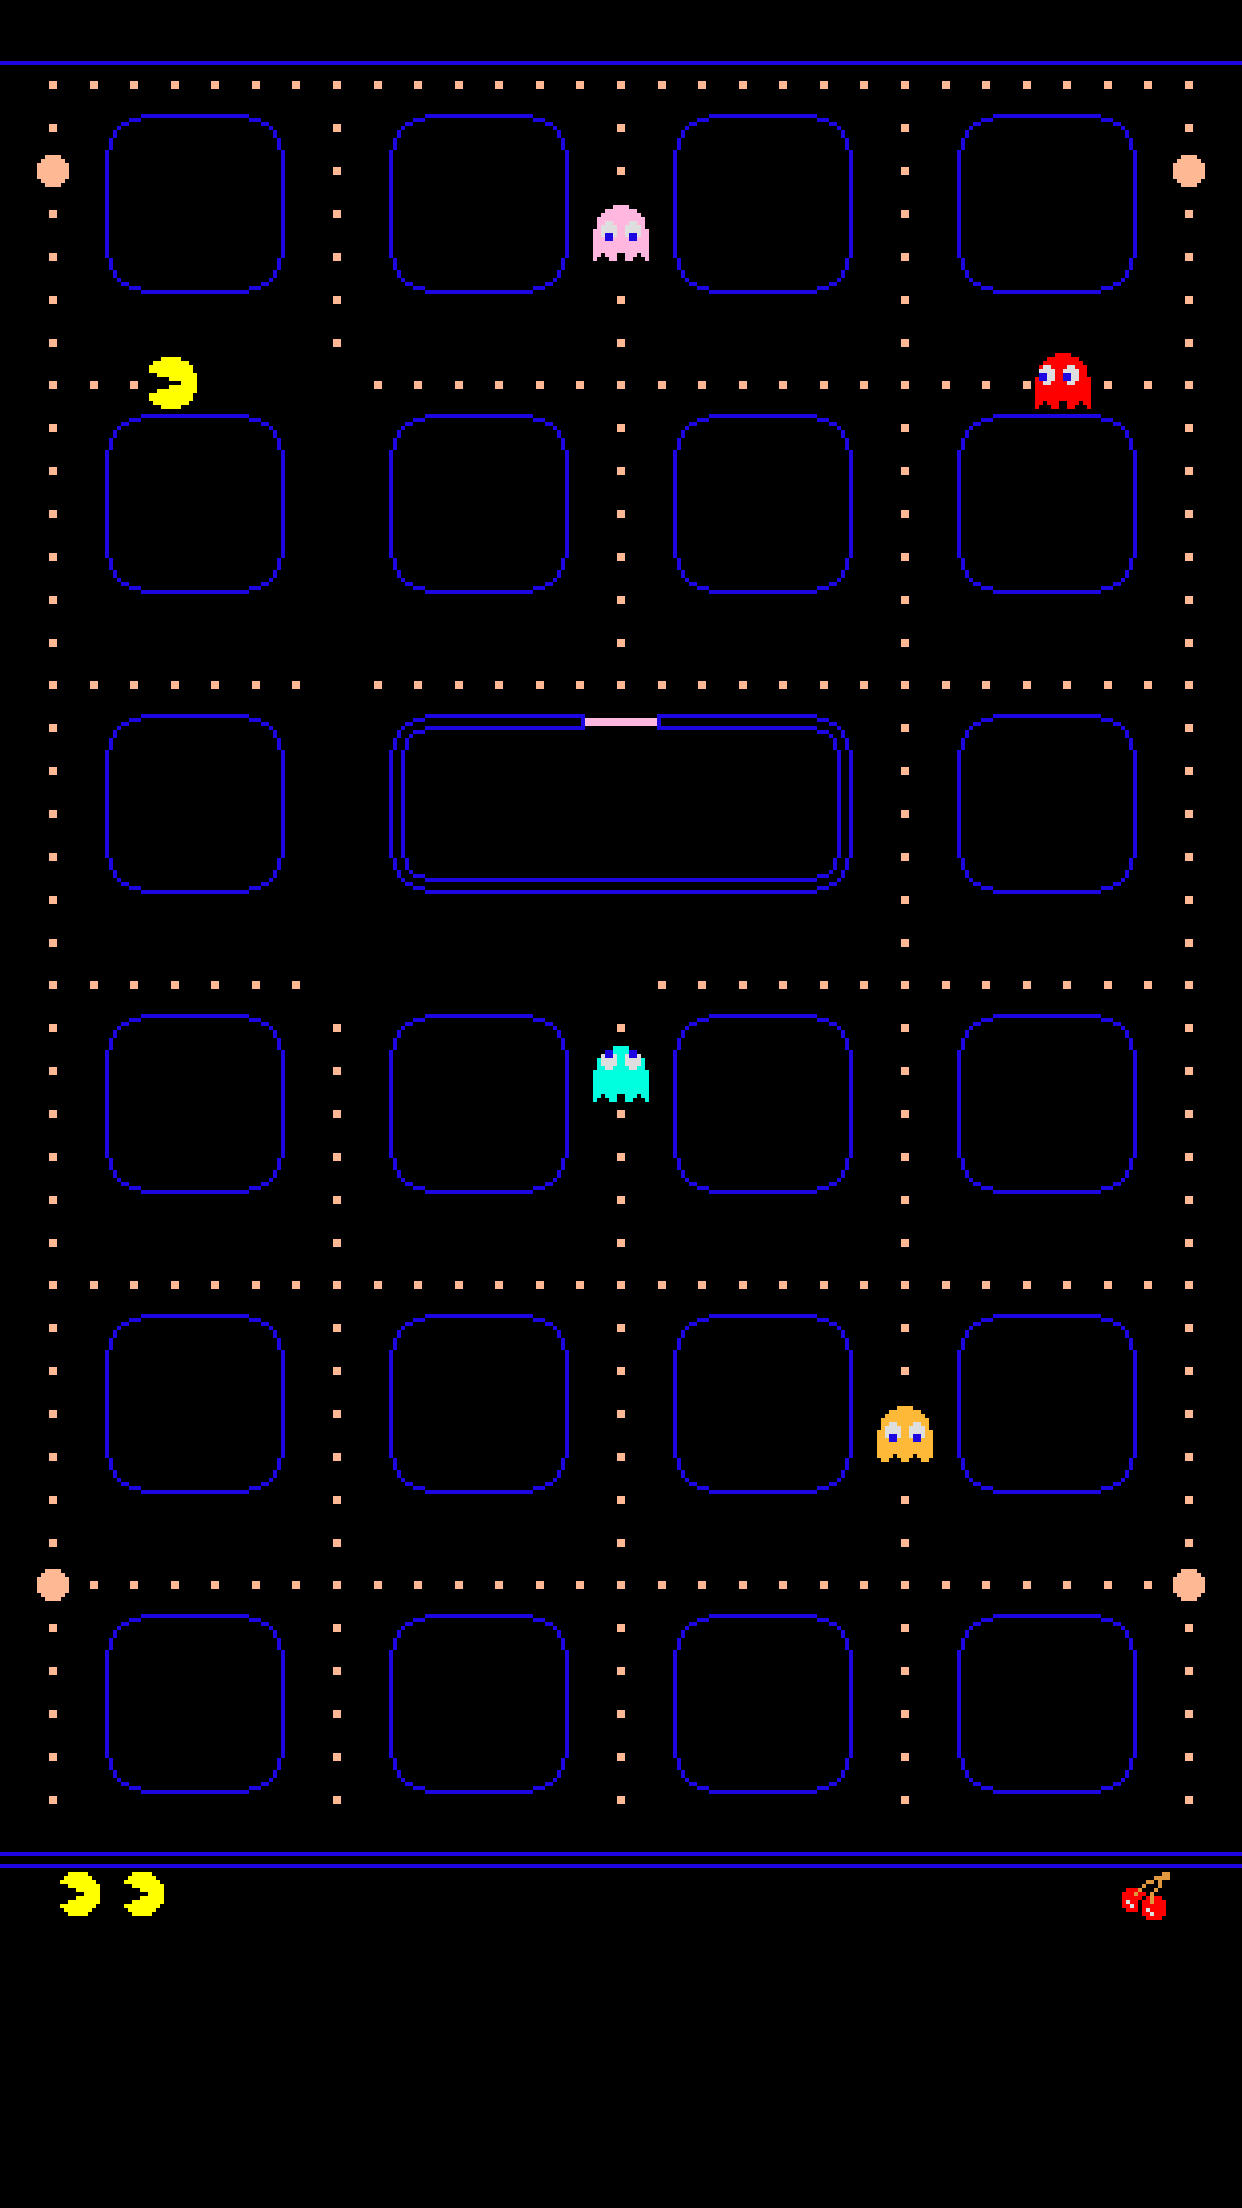 Pacman Wallpaper Iphone X Pac Man Iphone Wallpaper Jeffrey Carl Faden S Blog